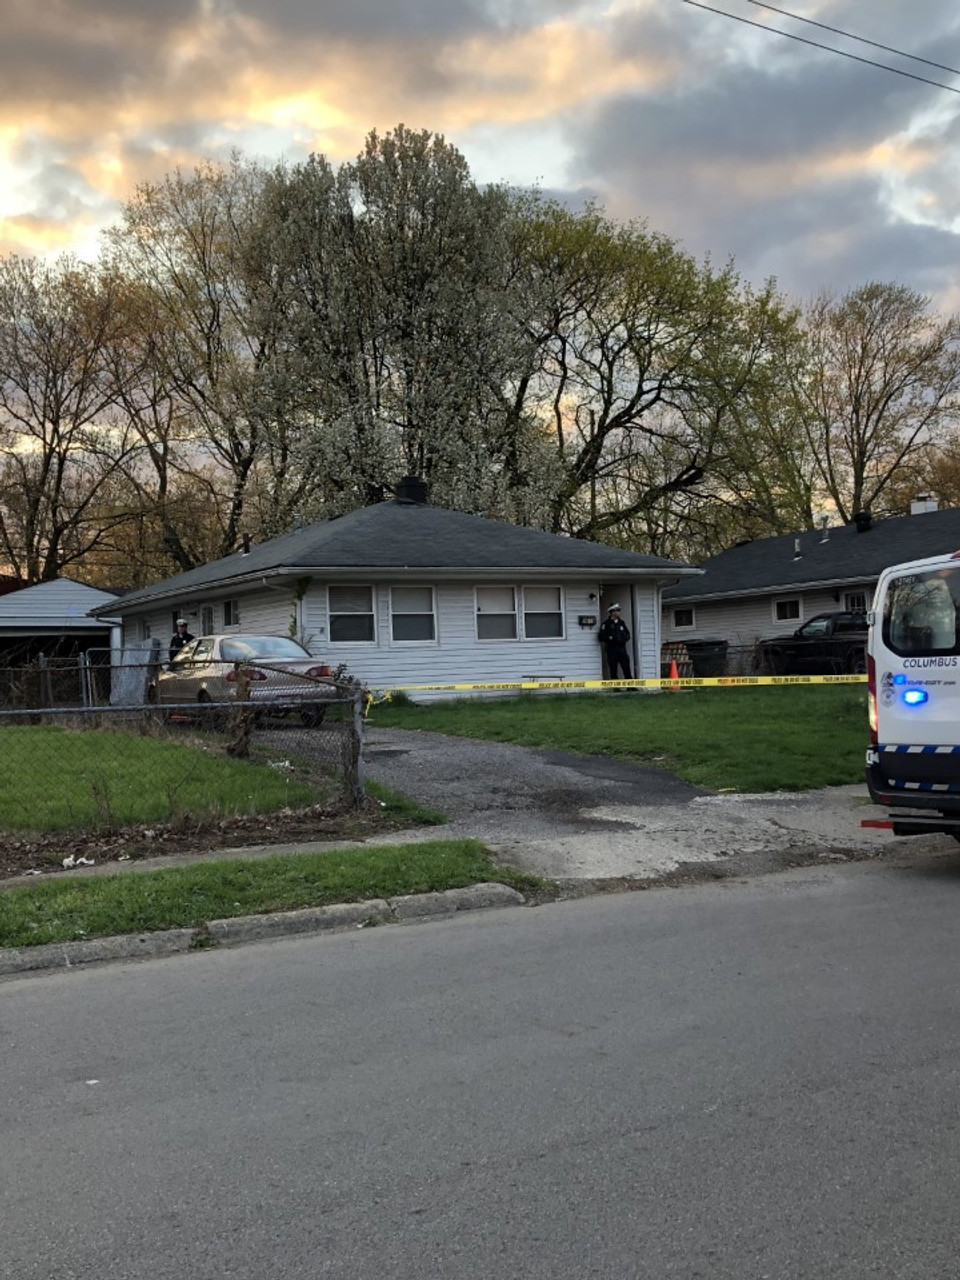 14 Year Old Girl In Critical Condition After Shooting In North Columbus Wtte